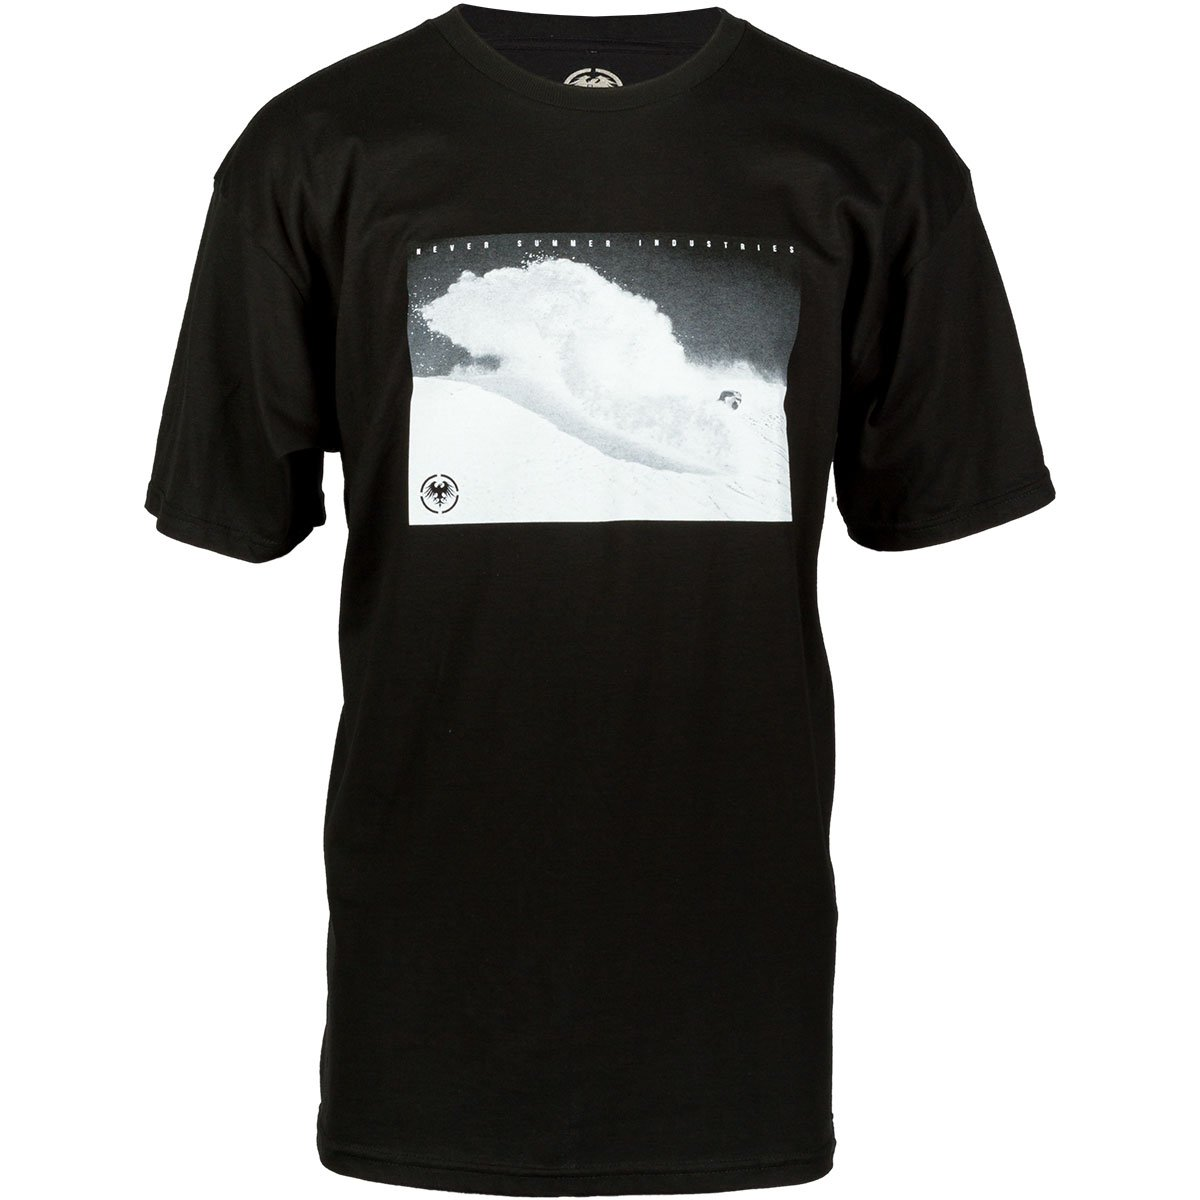 Never Summer Slasher Photo Short Sleeve T-Shirt (X-Large, Black)